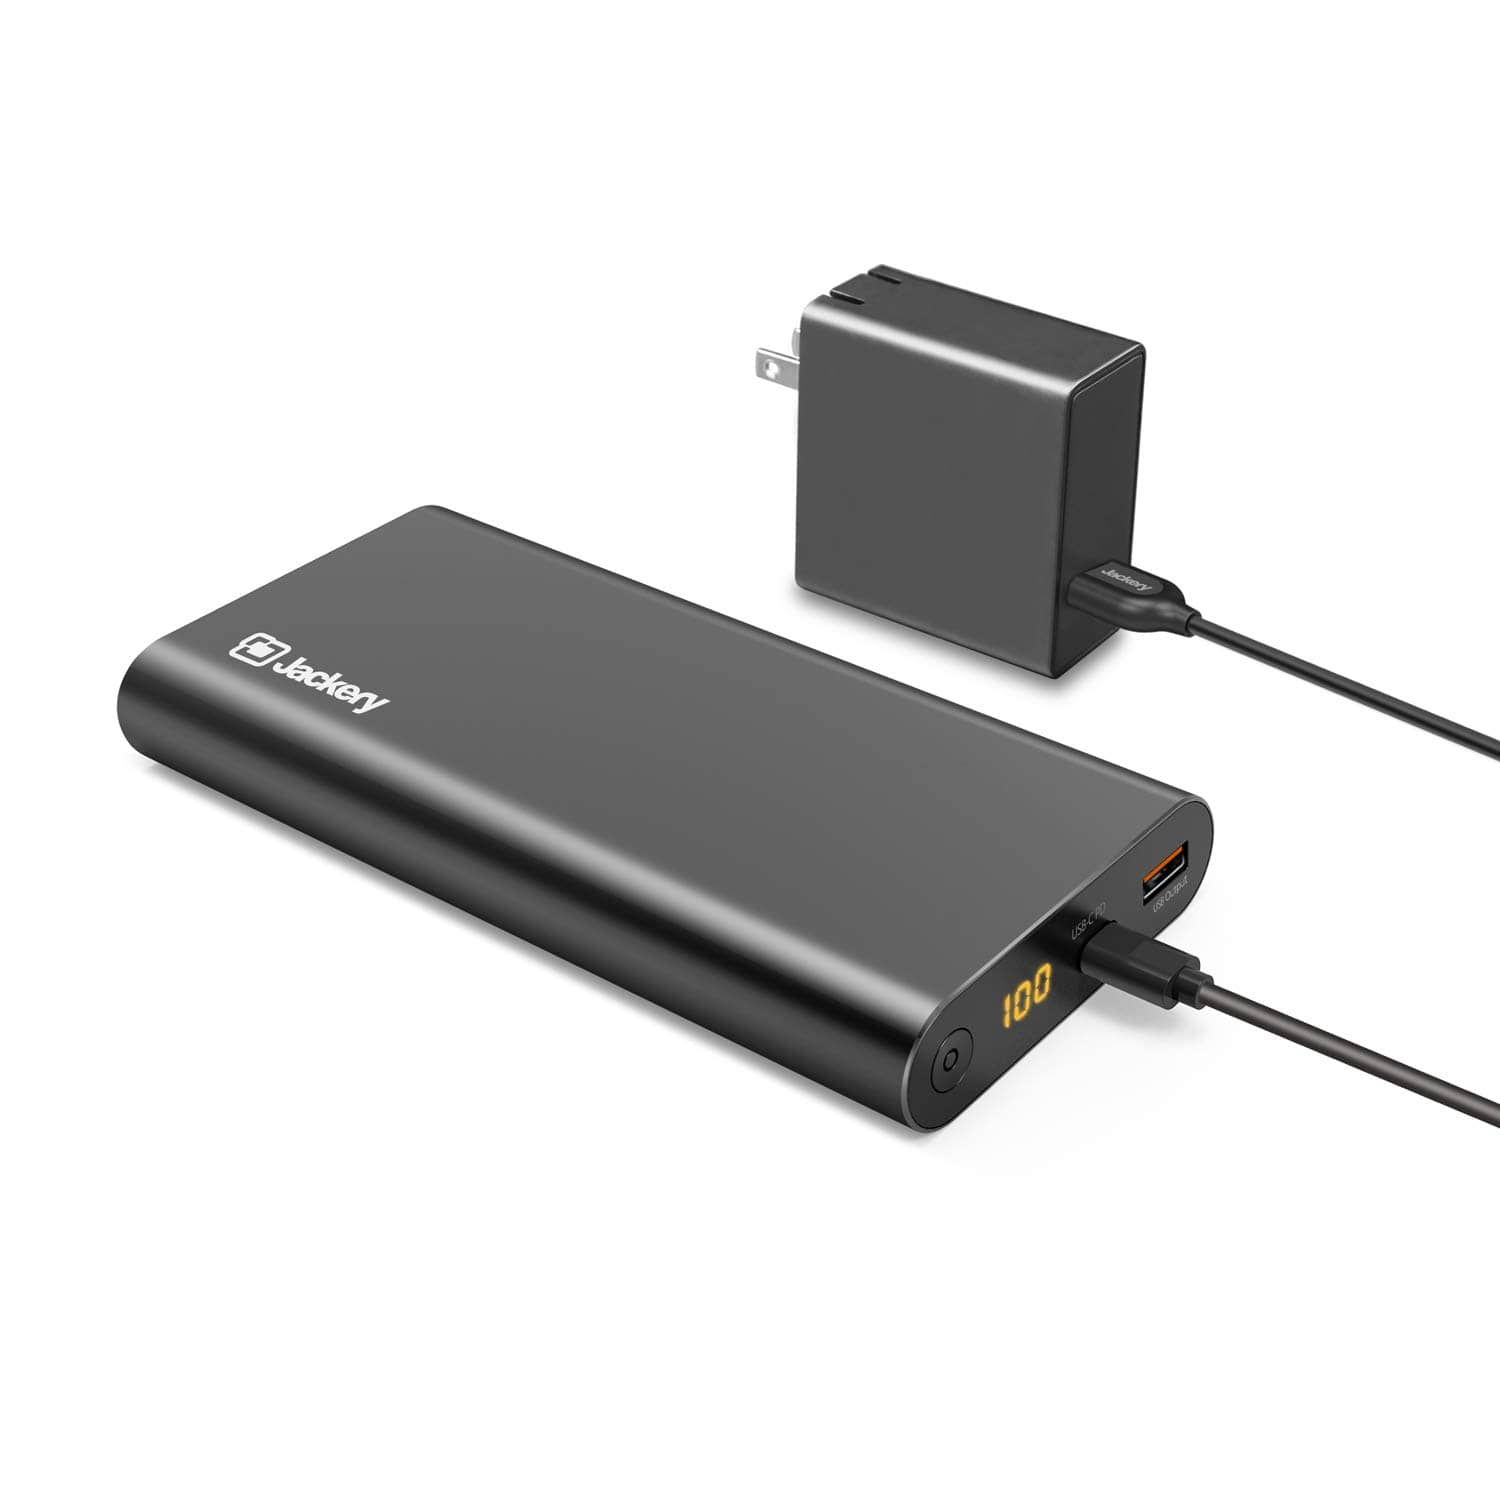 Amazon Prime deals: Jackery Supercharge 26800 PD, 26800mAh Portable Charger USB C 45W Power Bank & 45W Wall Charger $88.99